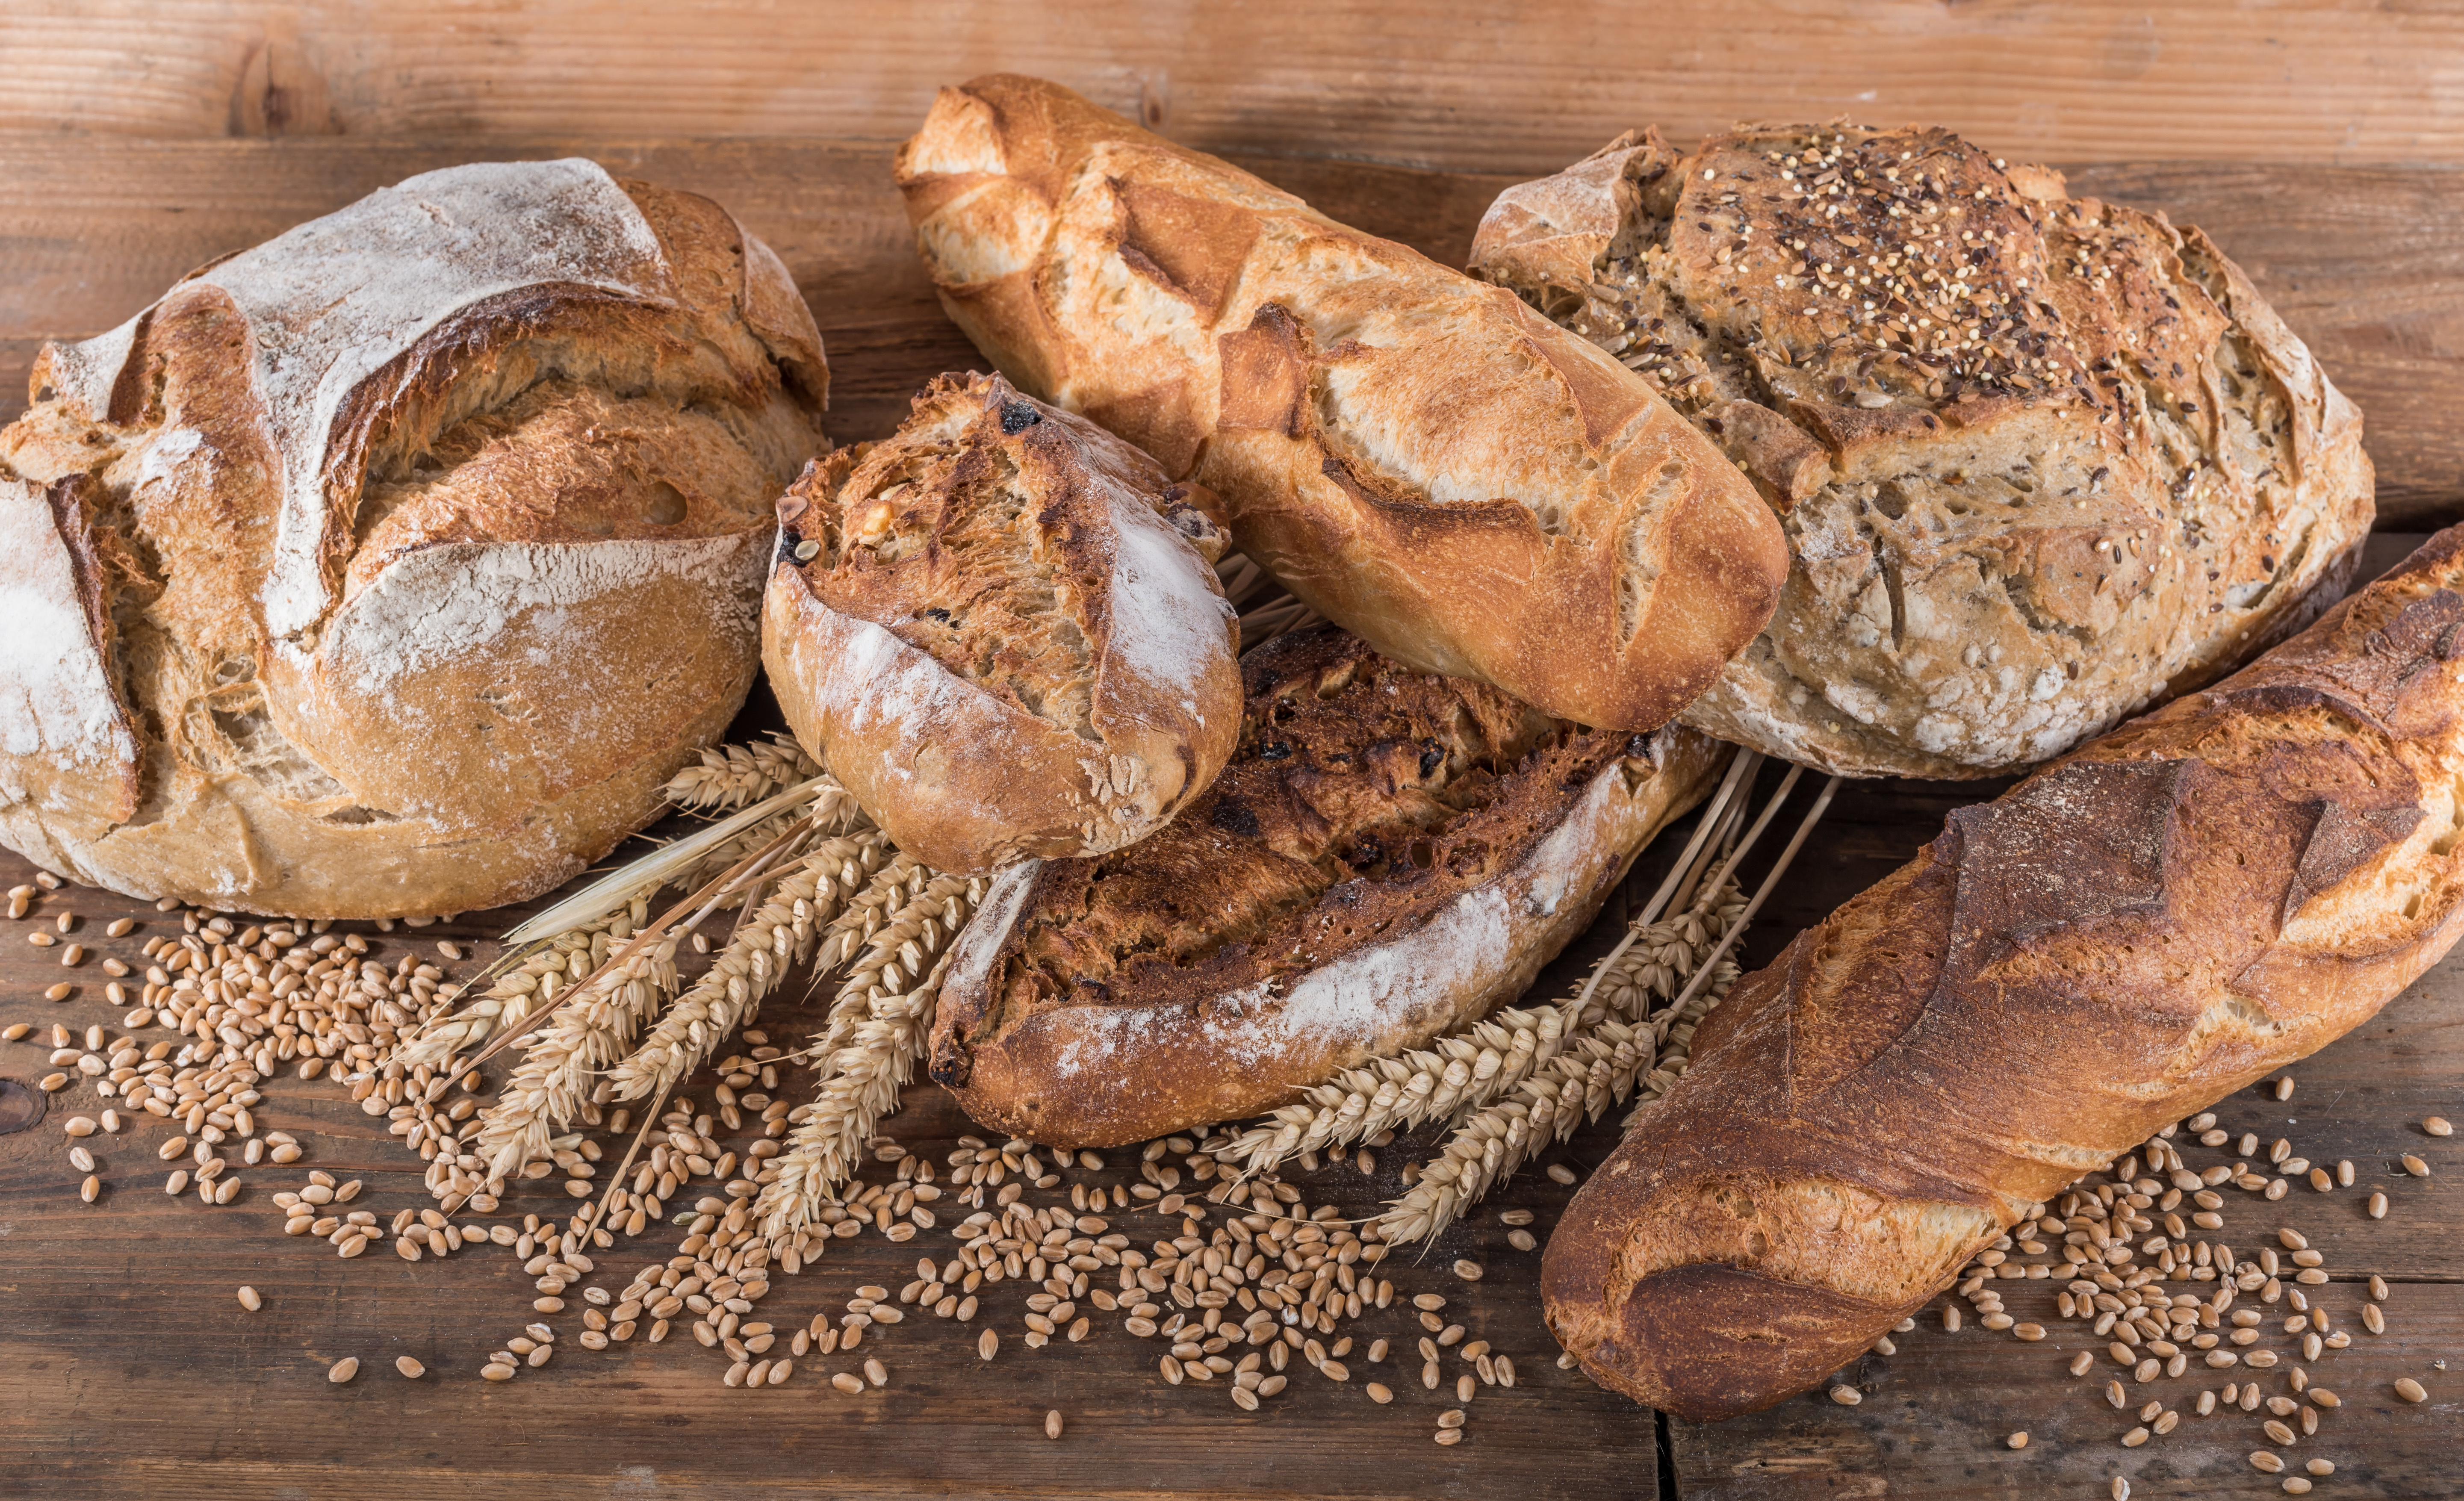 Grains in Weight Loss Bread Spread